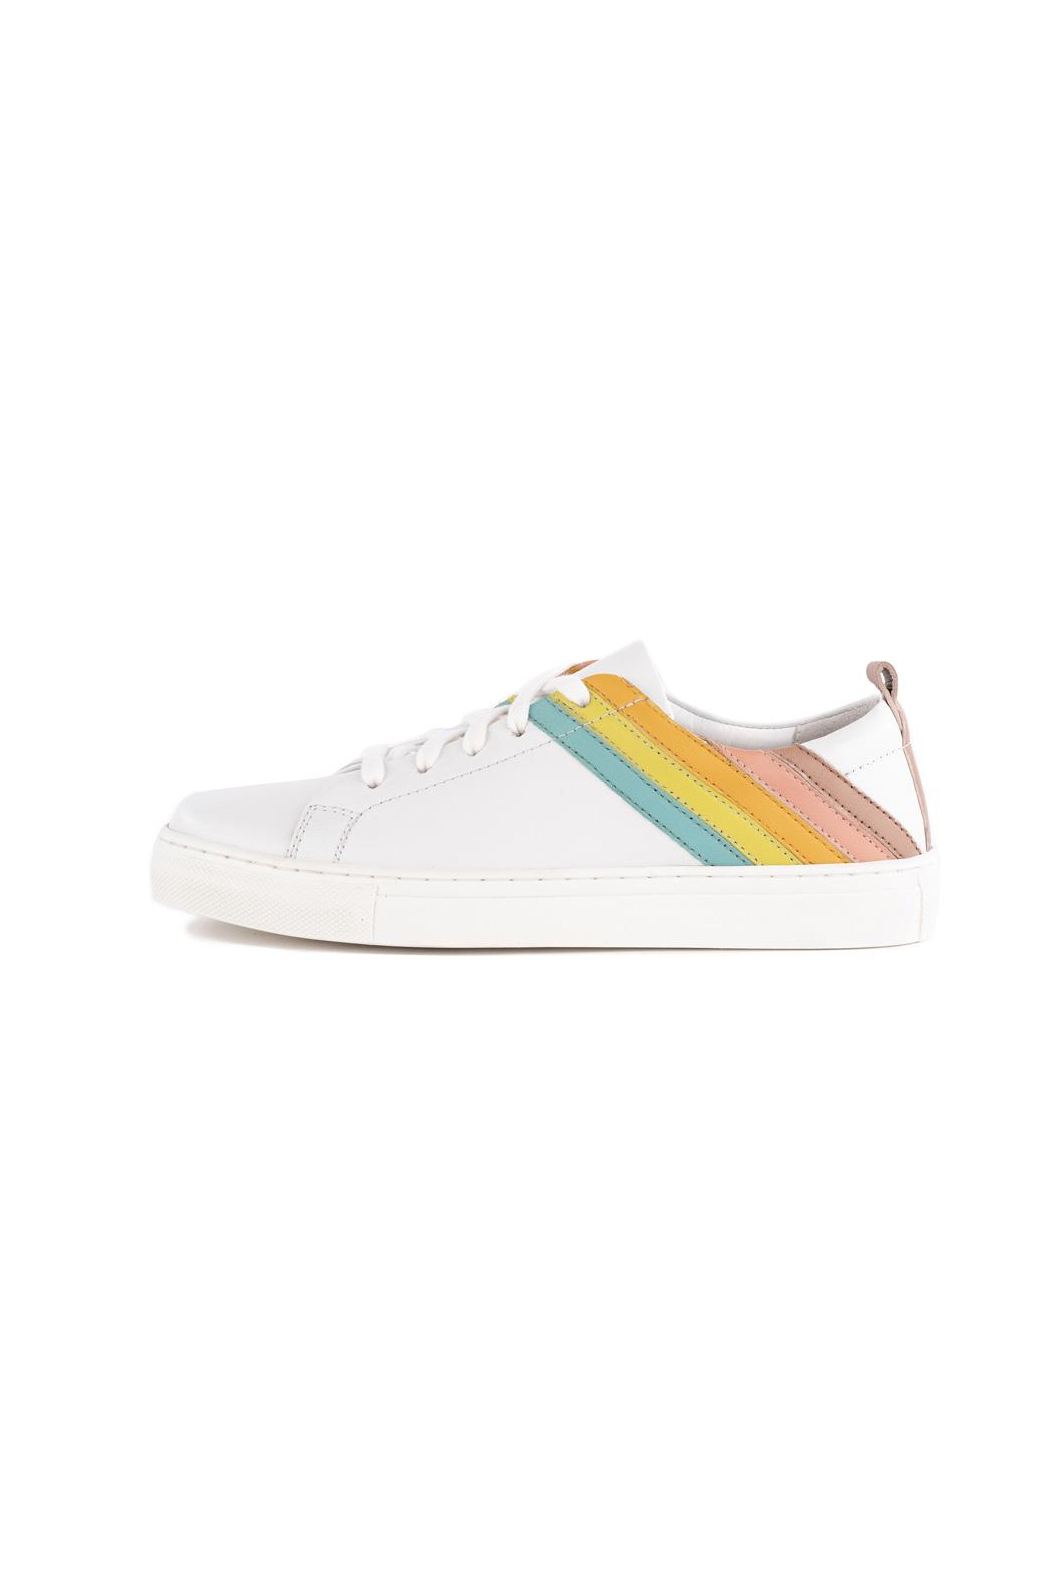 Seychelles Stand Out Sneaker - Main Image